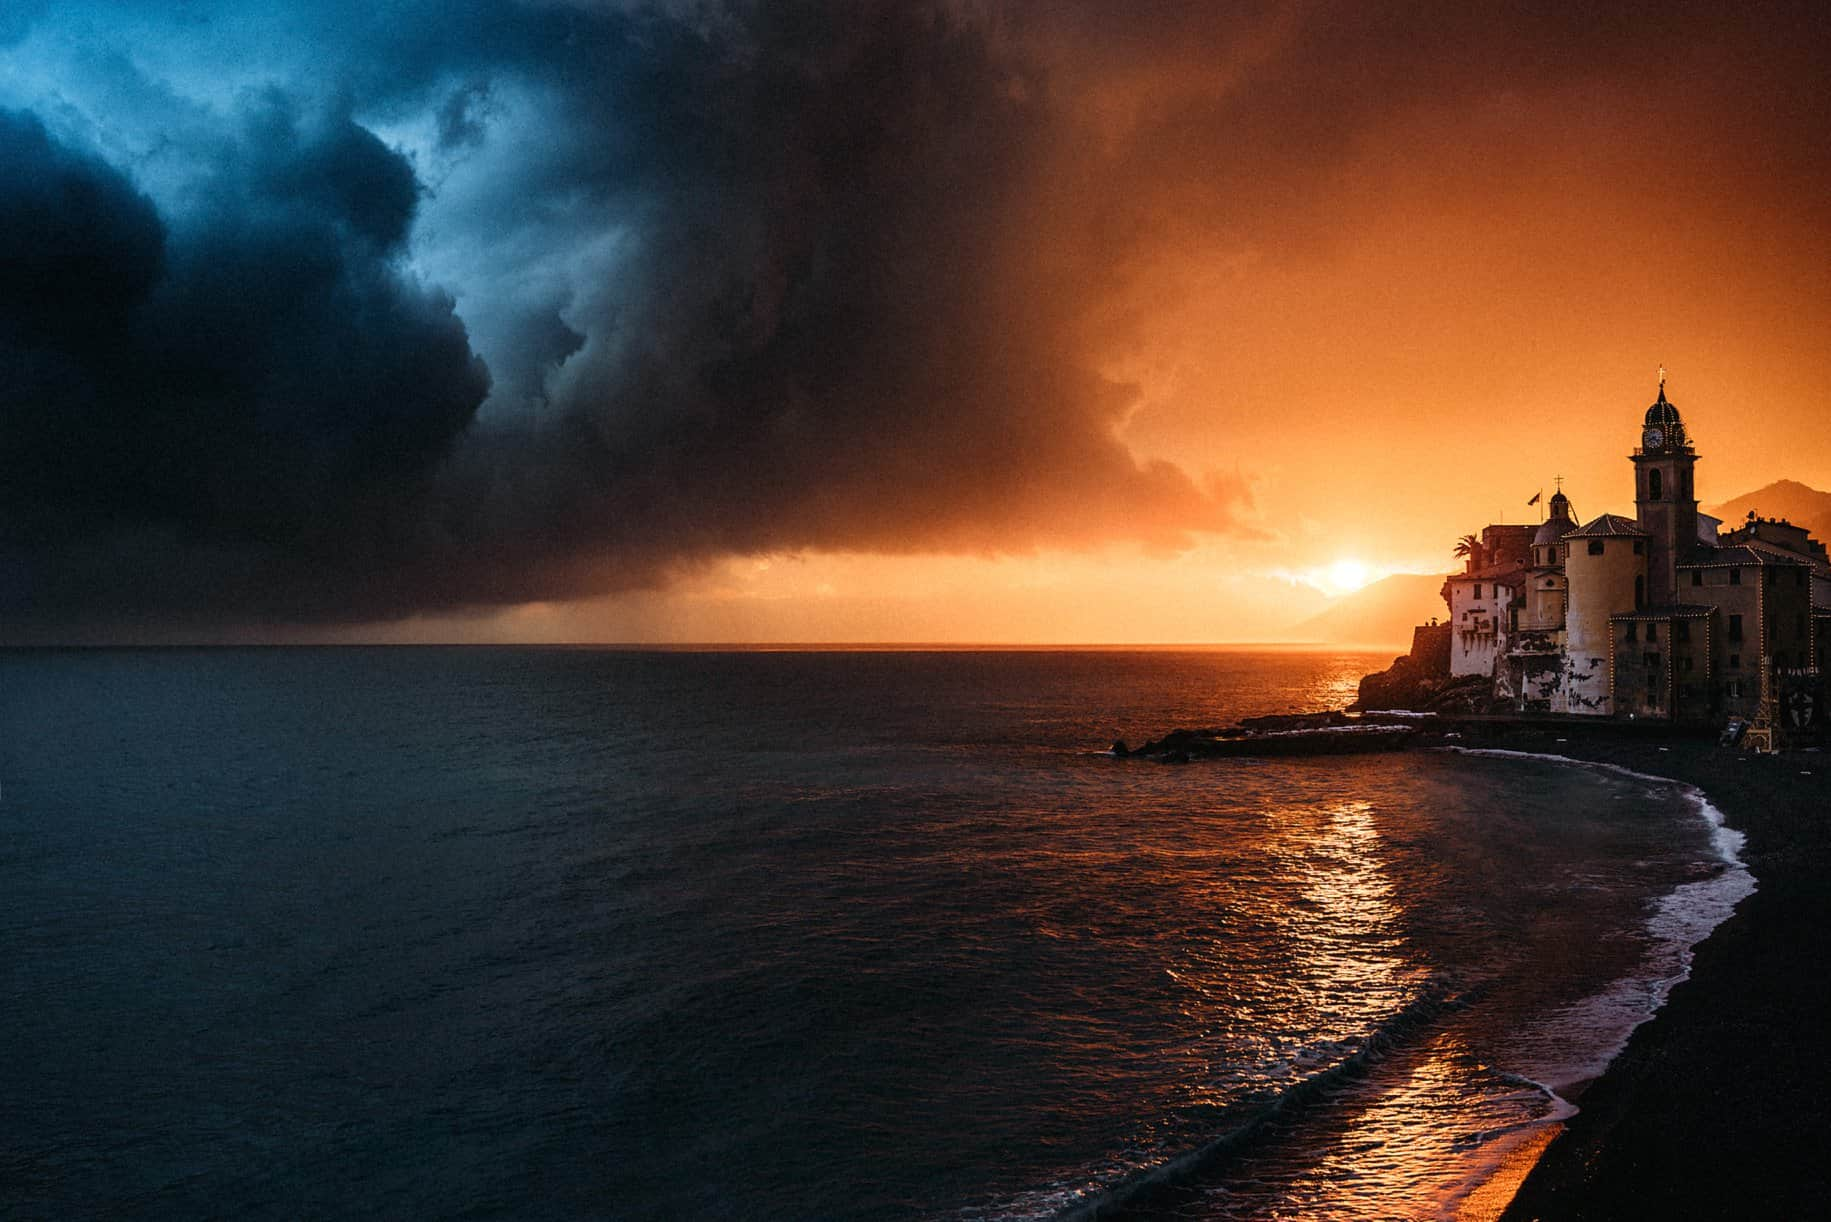 Amazing sunset on the Italian coast